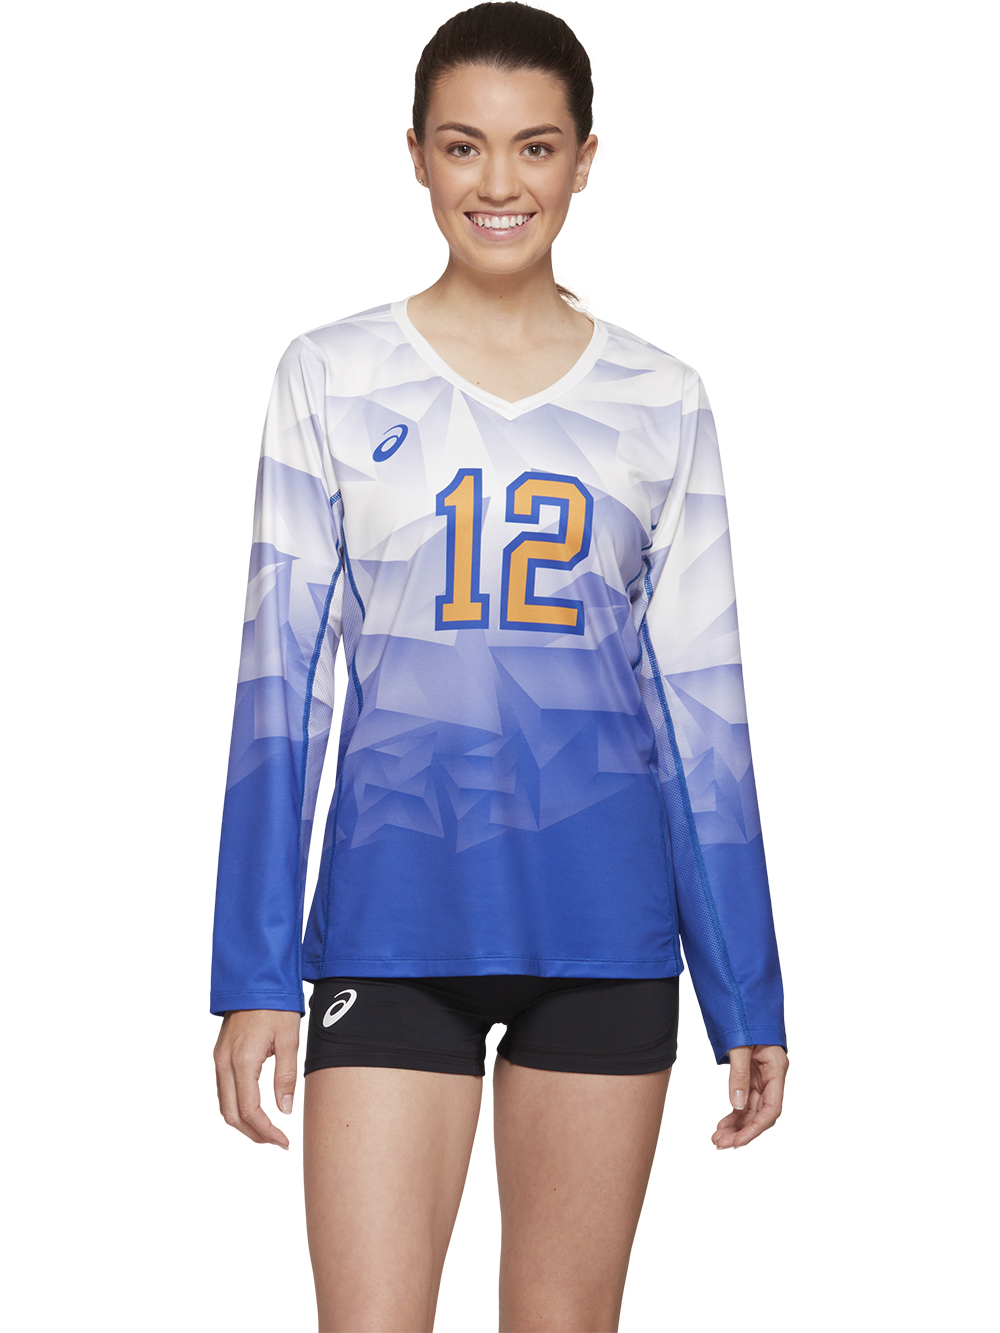 Asics Sublimated Custom Long Sleeve Jersey Midwest Volleyball Warehouse